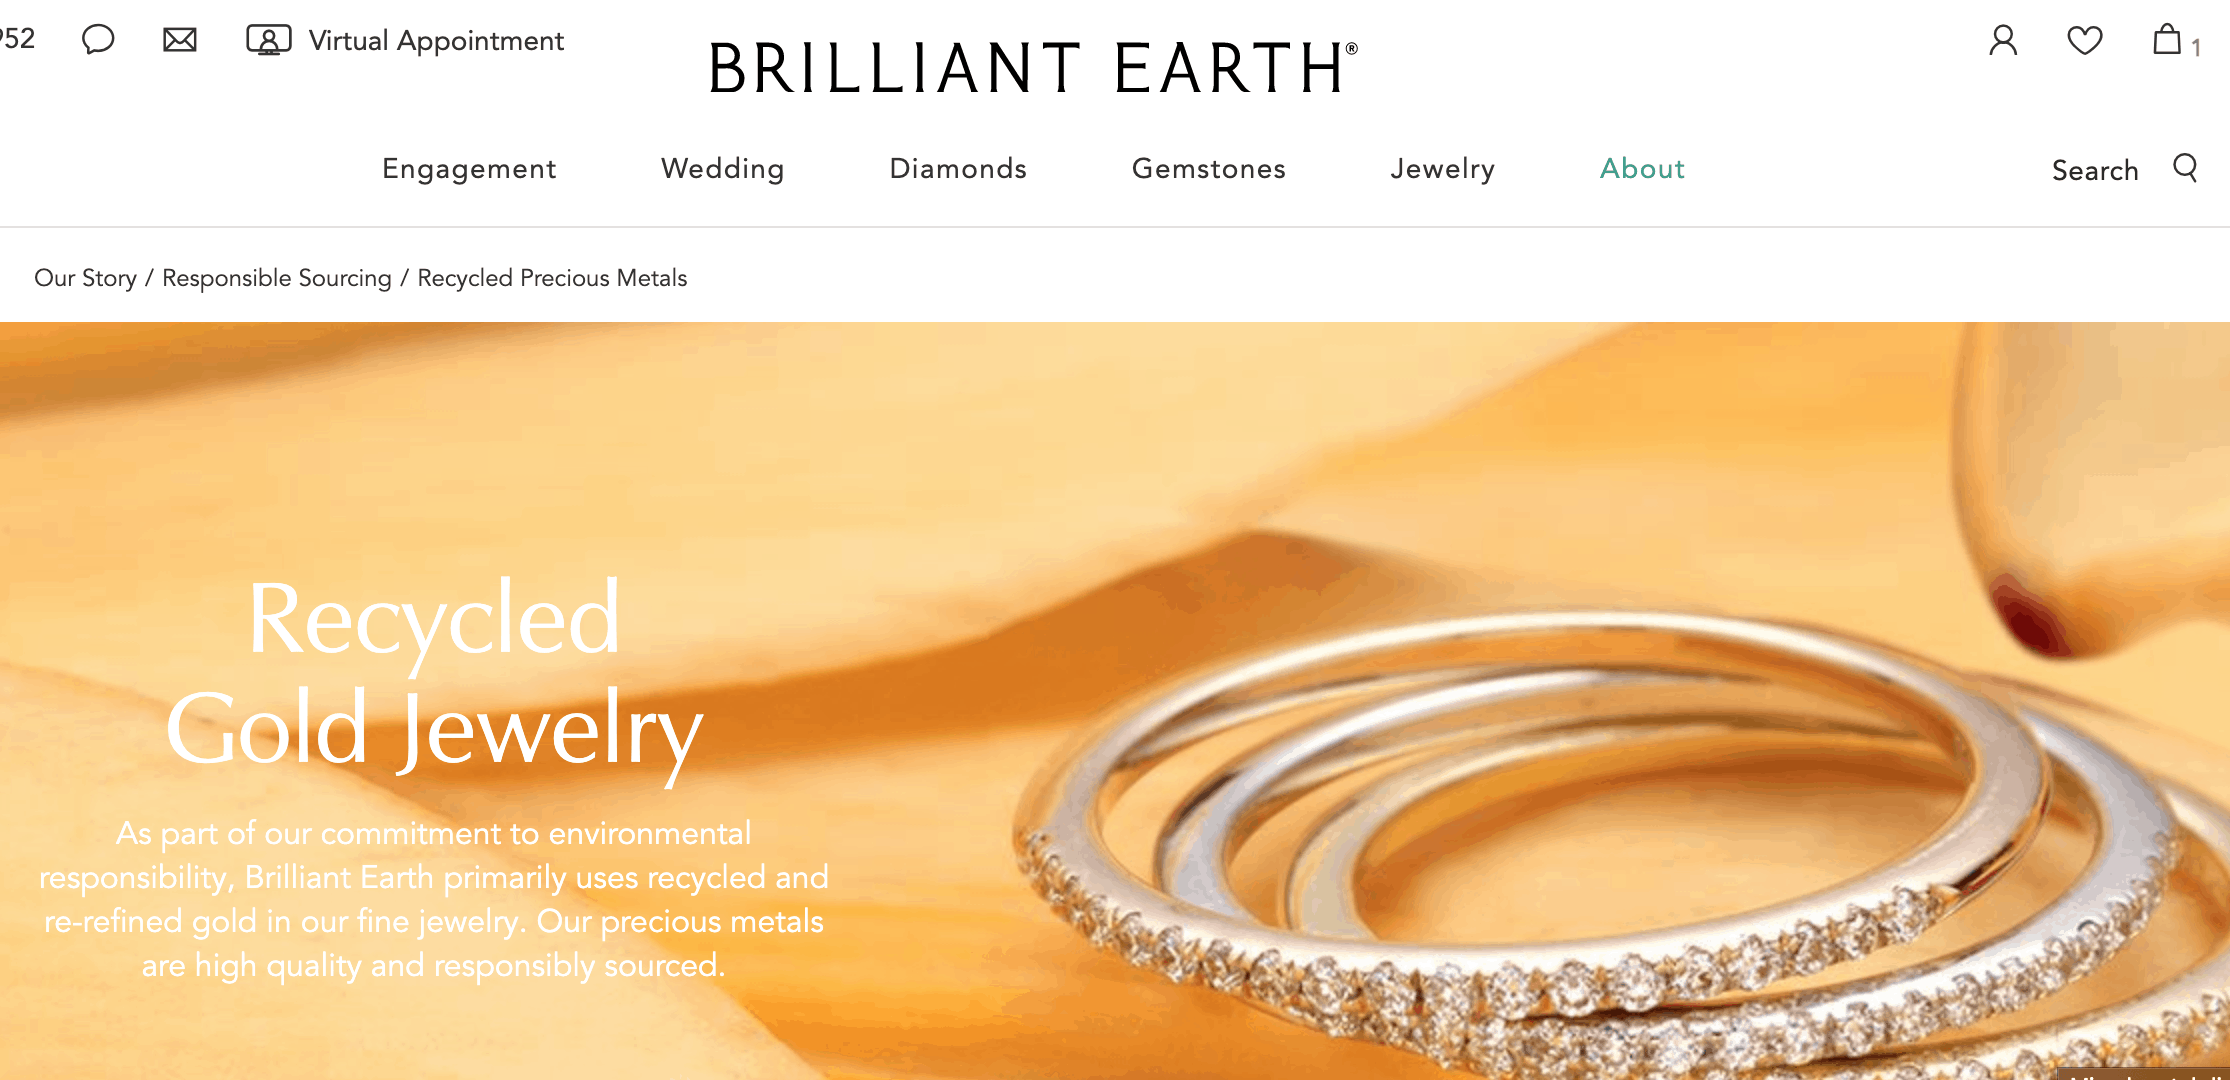 Brilliant Earth - Recycled Gold Jewelry